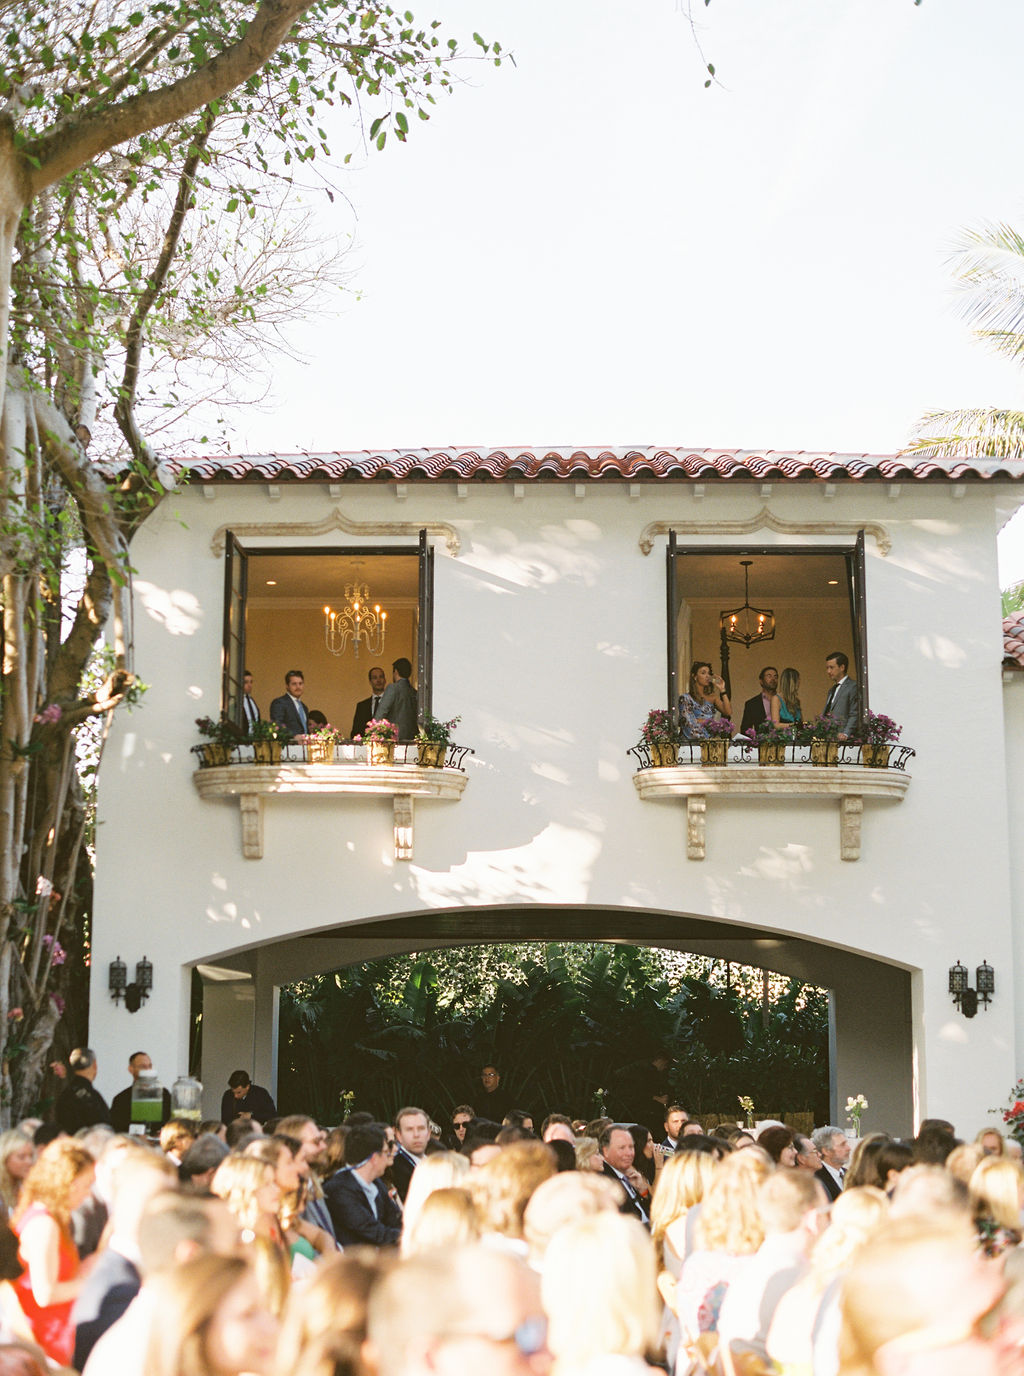 elegant wedding house with guests milling around